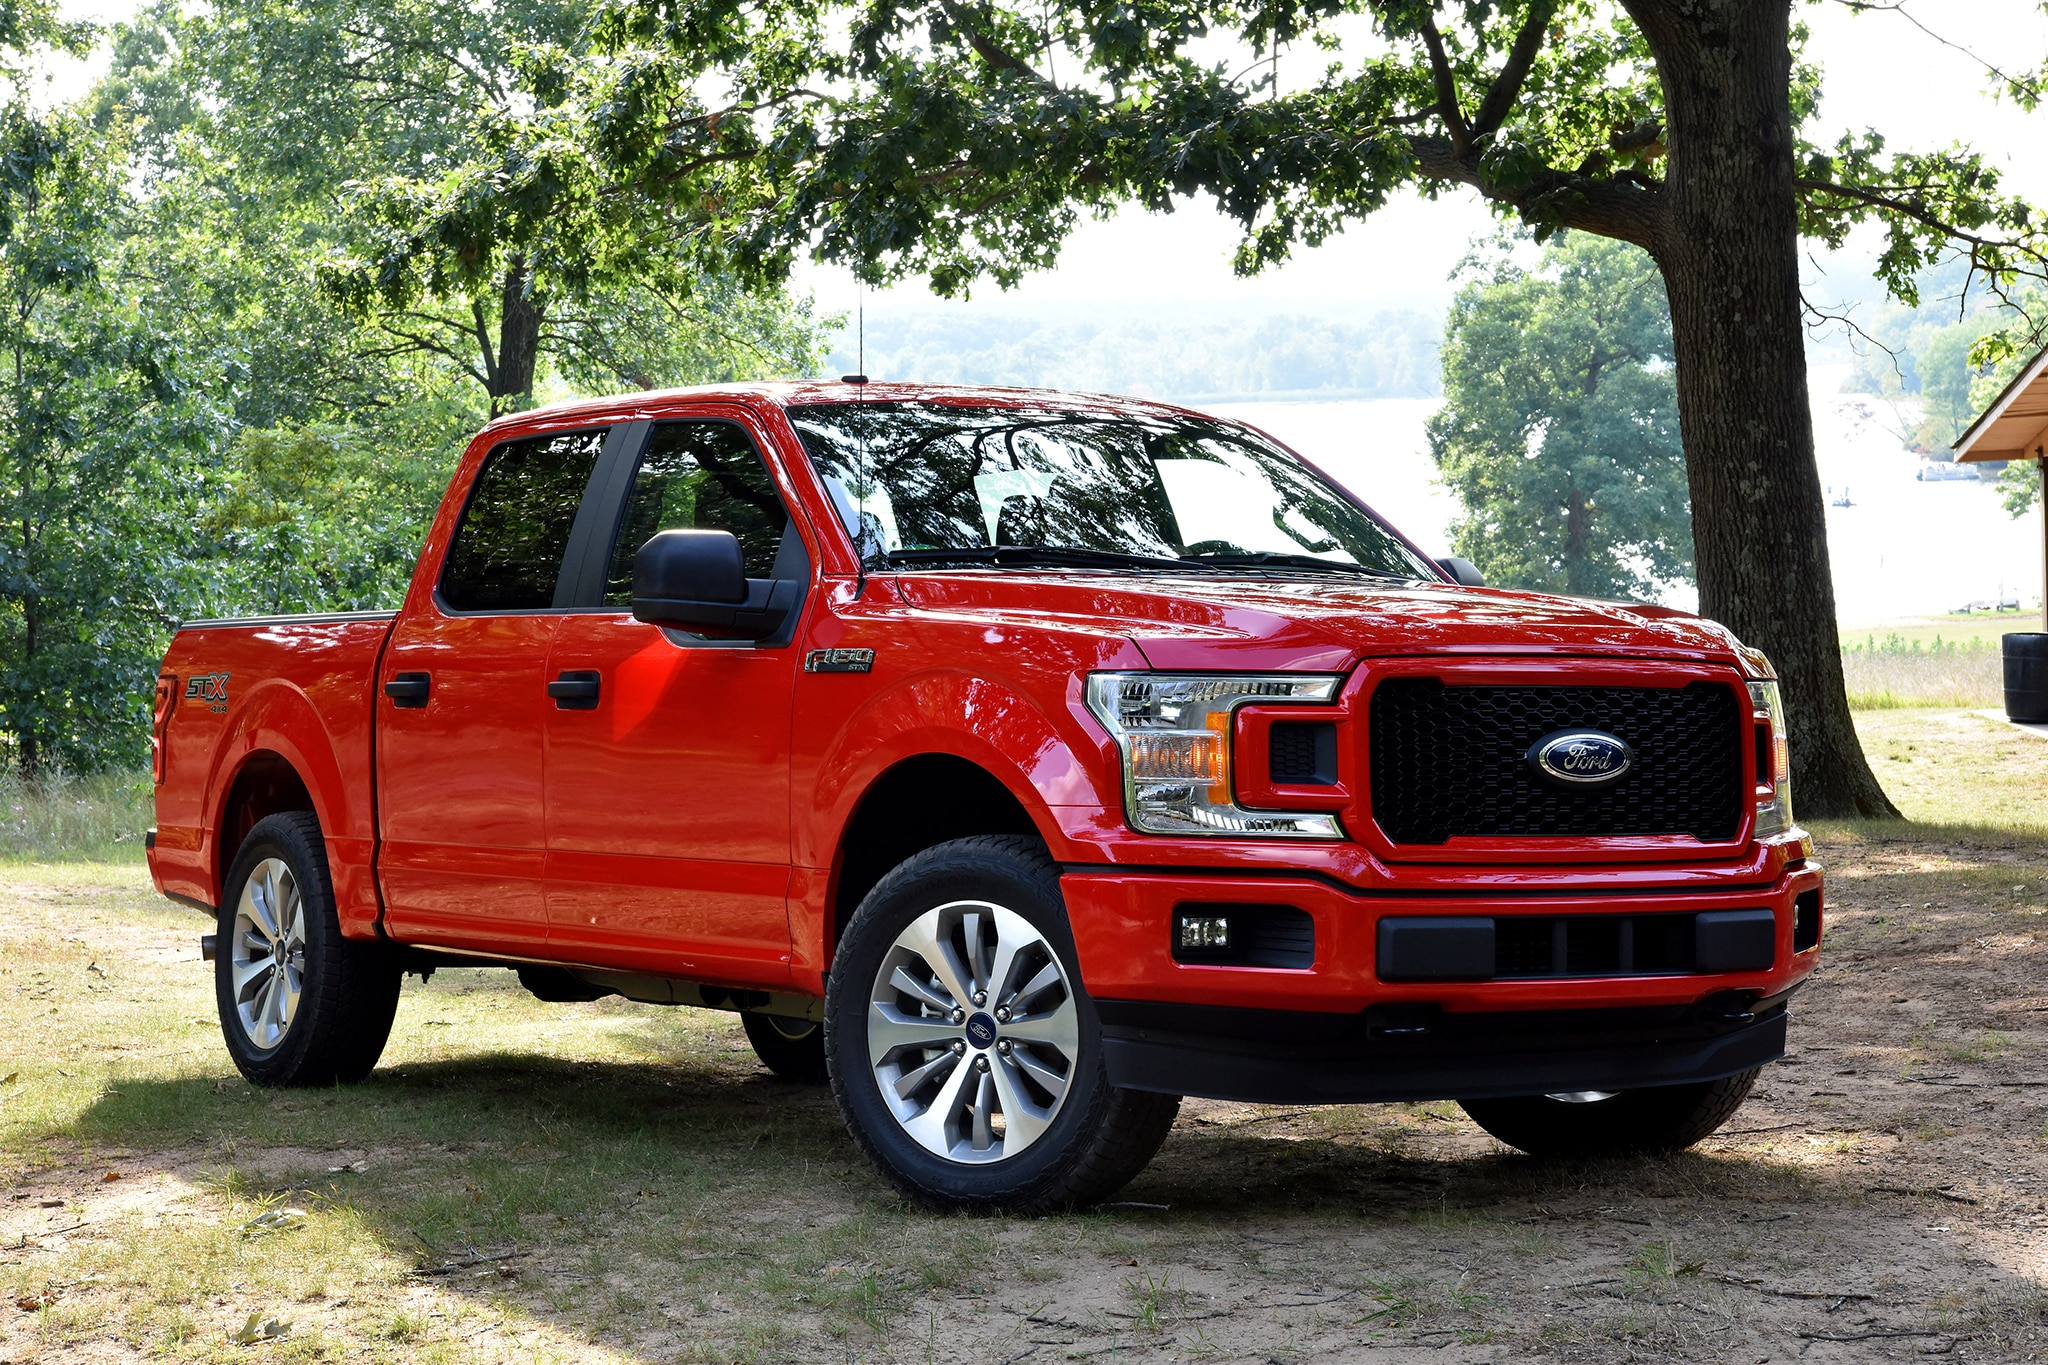 2017 Ford F150 Lightning >> Ford Dealership Builds F-150 Lightning That FoMoCo Won't | Automobile Magazine